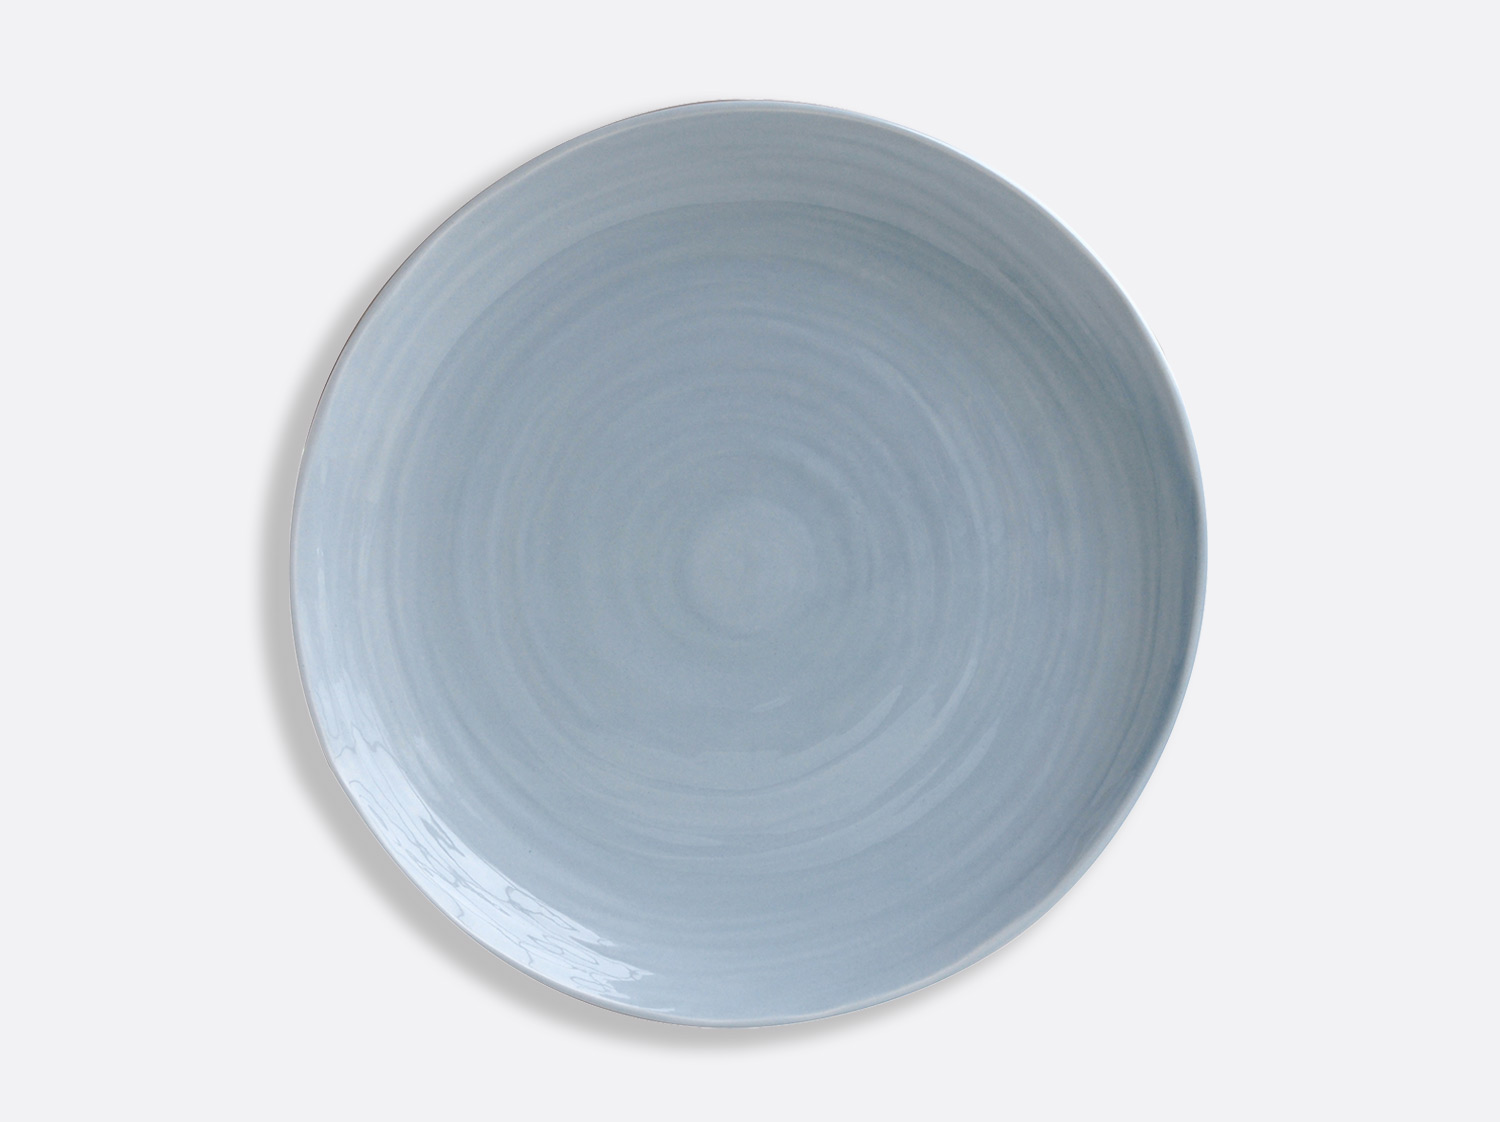 Assiette Bleu 31 cm en porcelaine de la collection Origine bleu Bernardaud